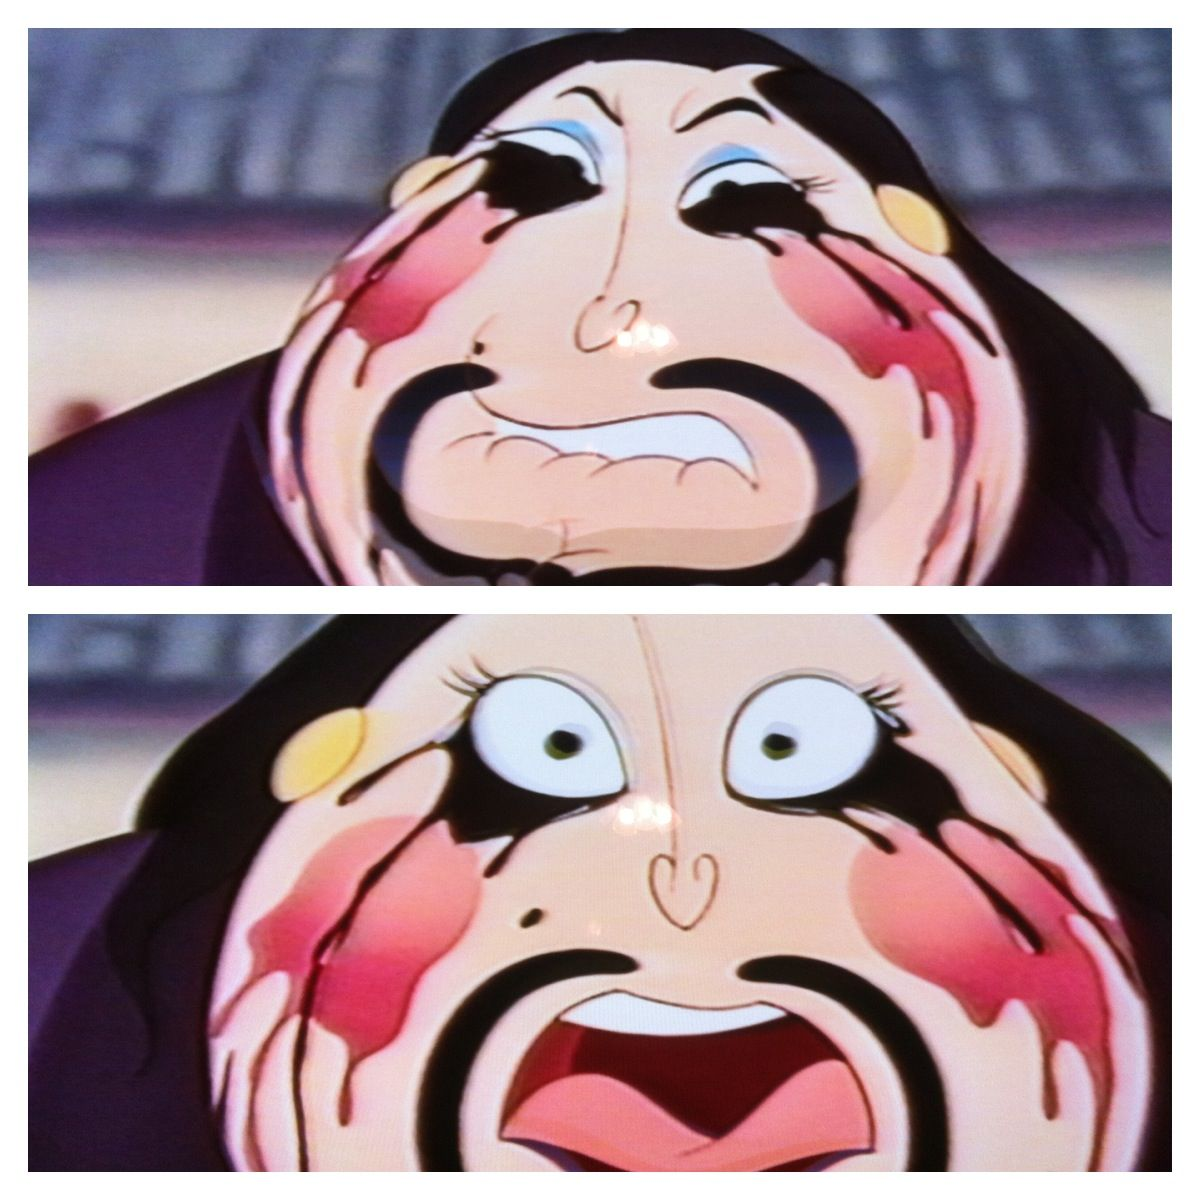 Too much makeup??? Haha;) the MatchMaker in Mulan disney